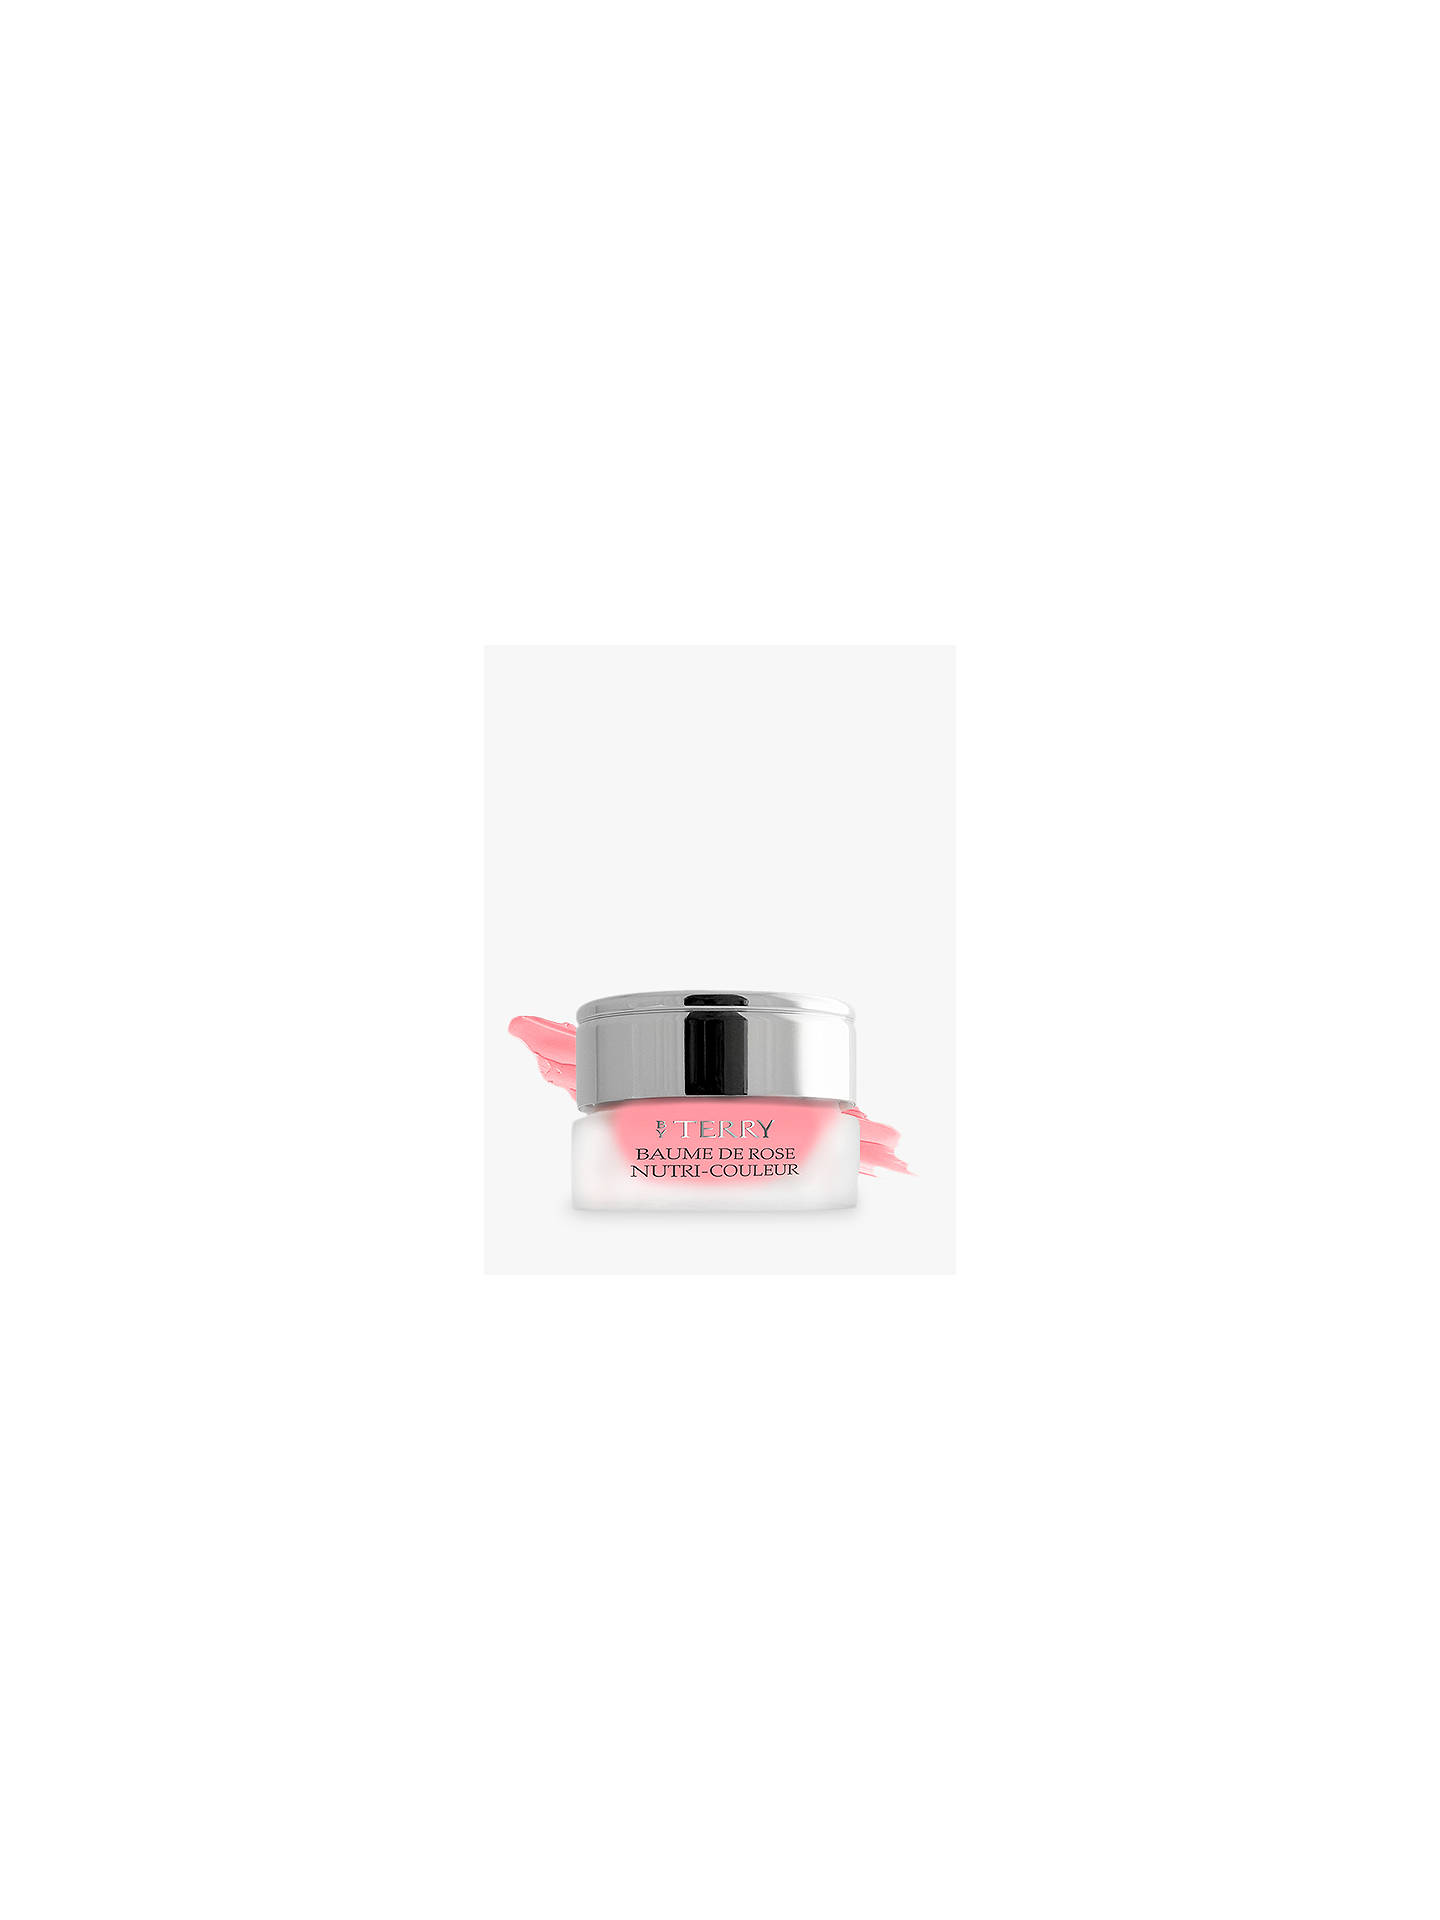 Buy BY TERRY Baum de Rose Nutri-Couleur, Rose Babe Online at johnlewis.com